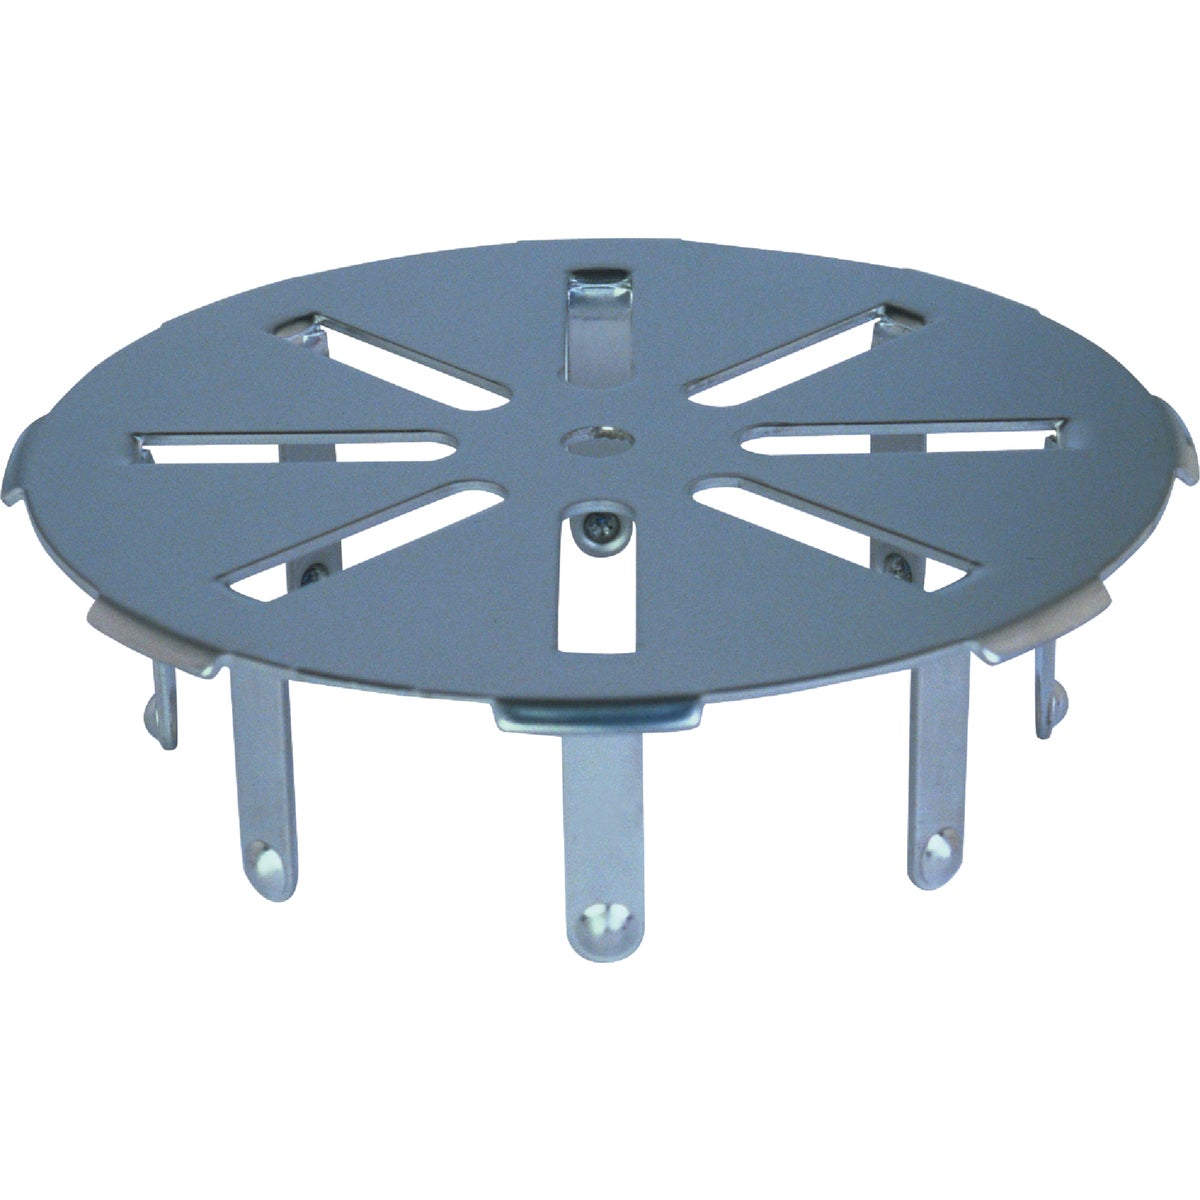 "4"" SNAP-IN PIPE STRAINER - 847-4PK1 by Sioux Chief Mfg"